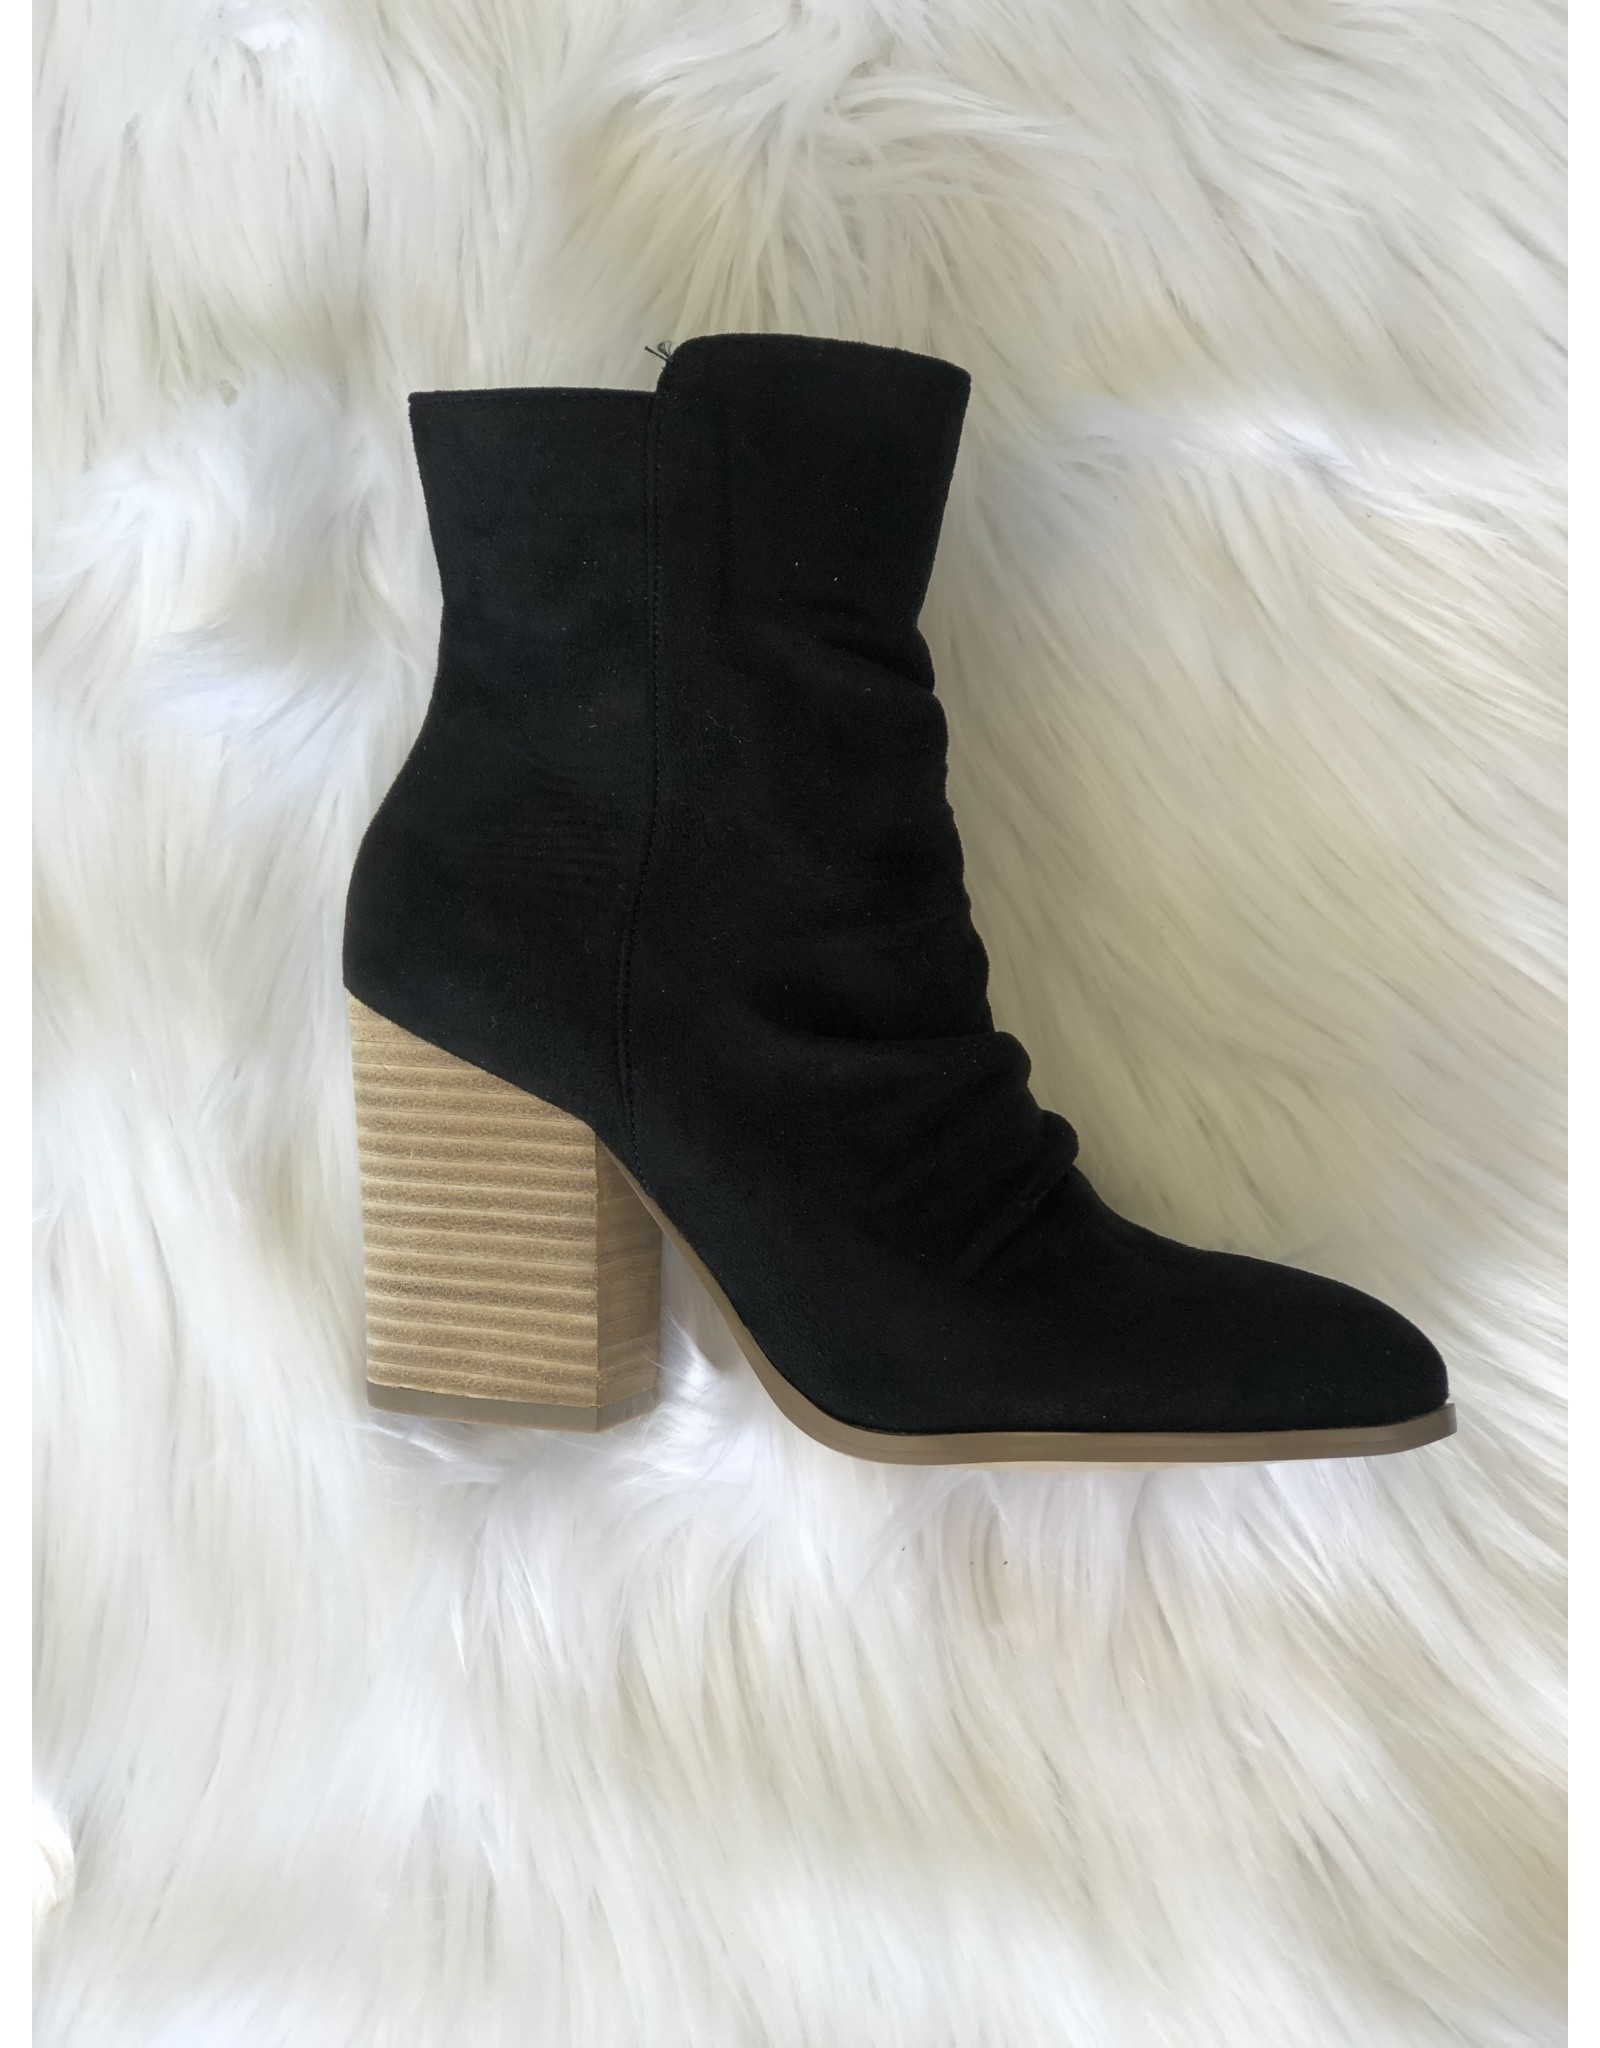 0 limit fashion BETH High Ankle Black Booties